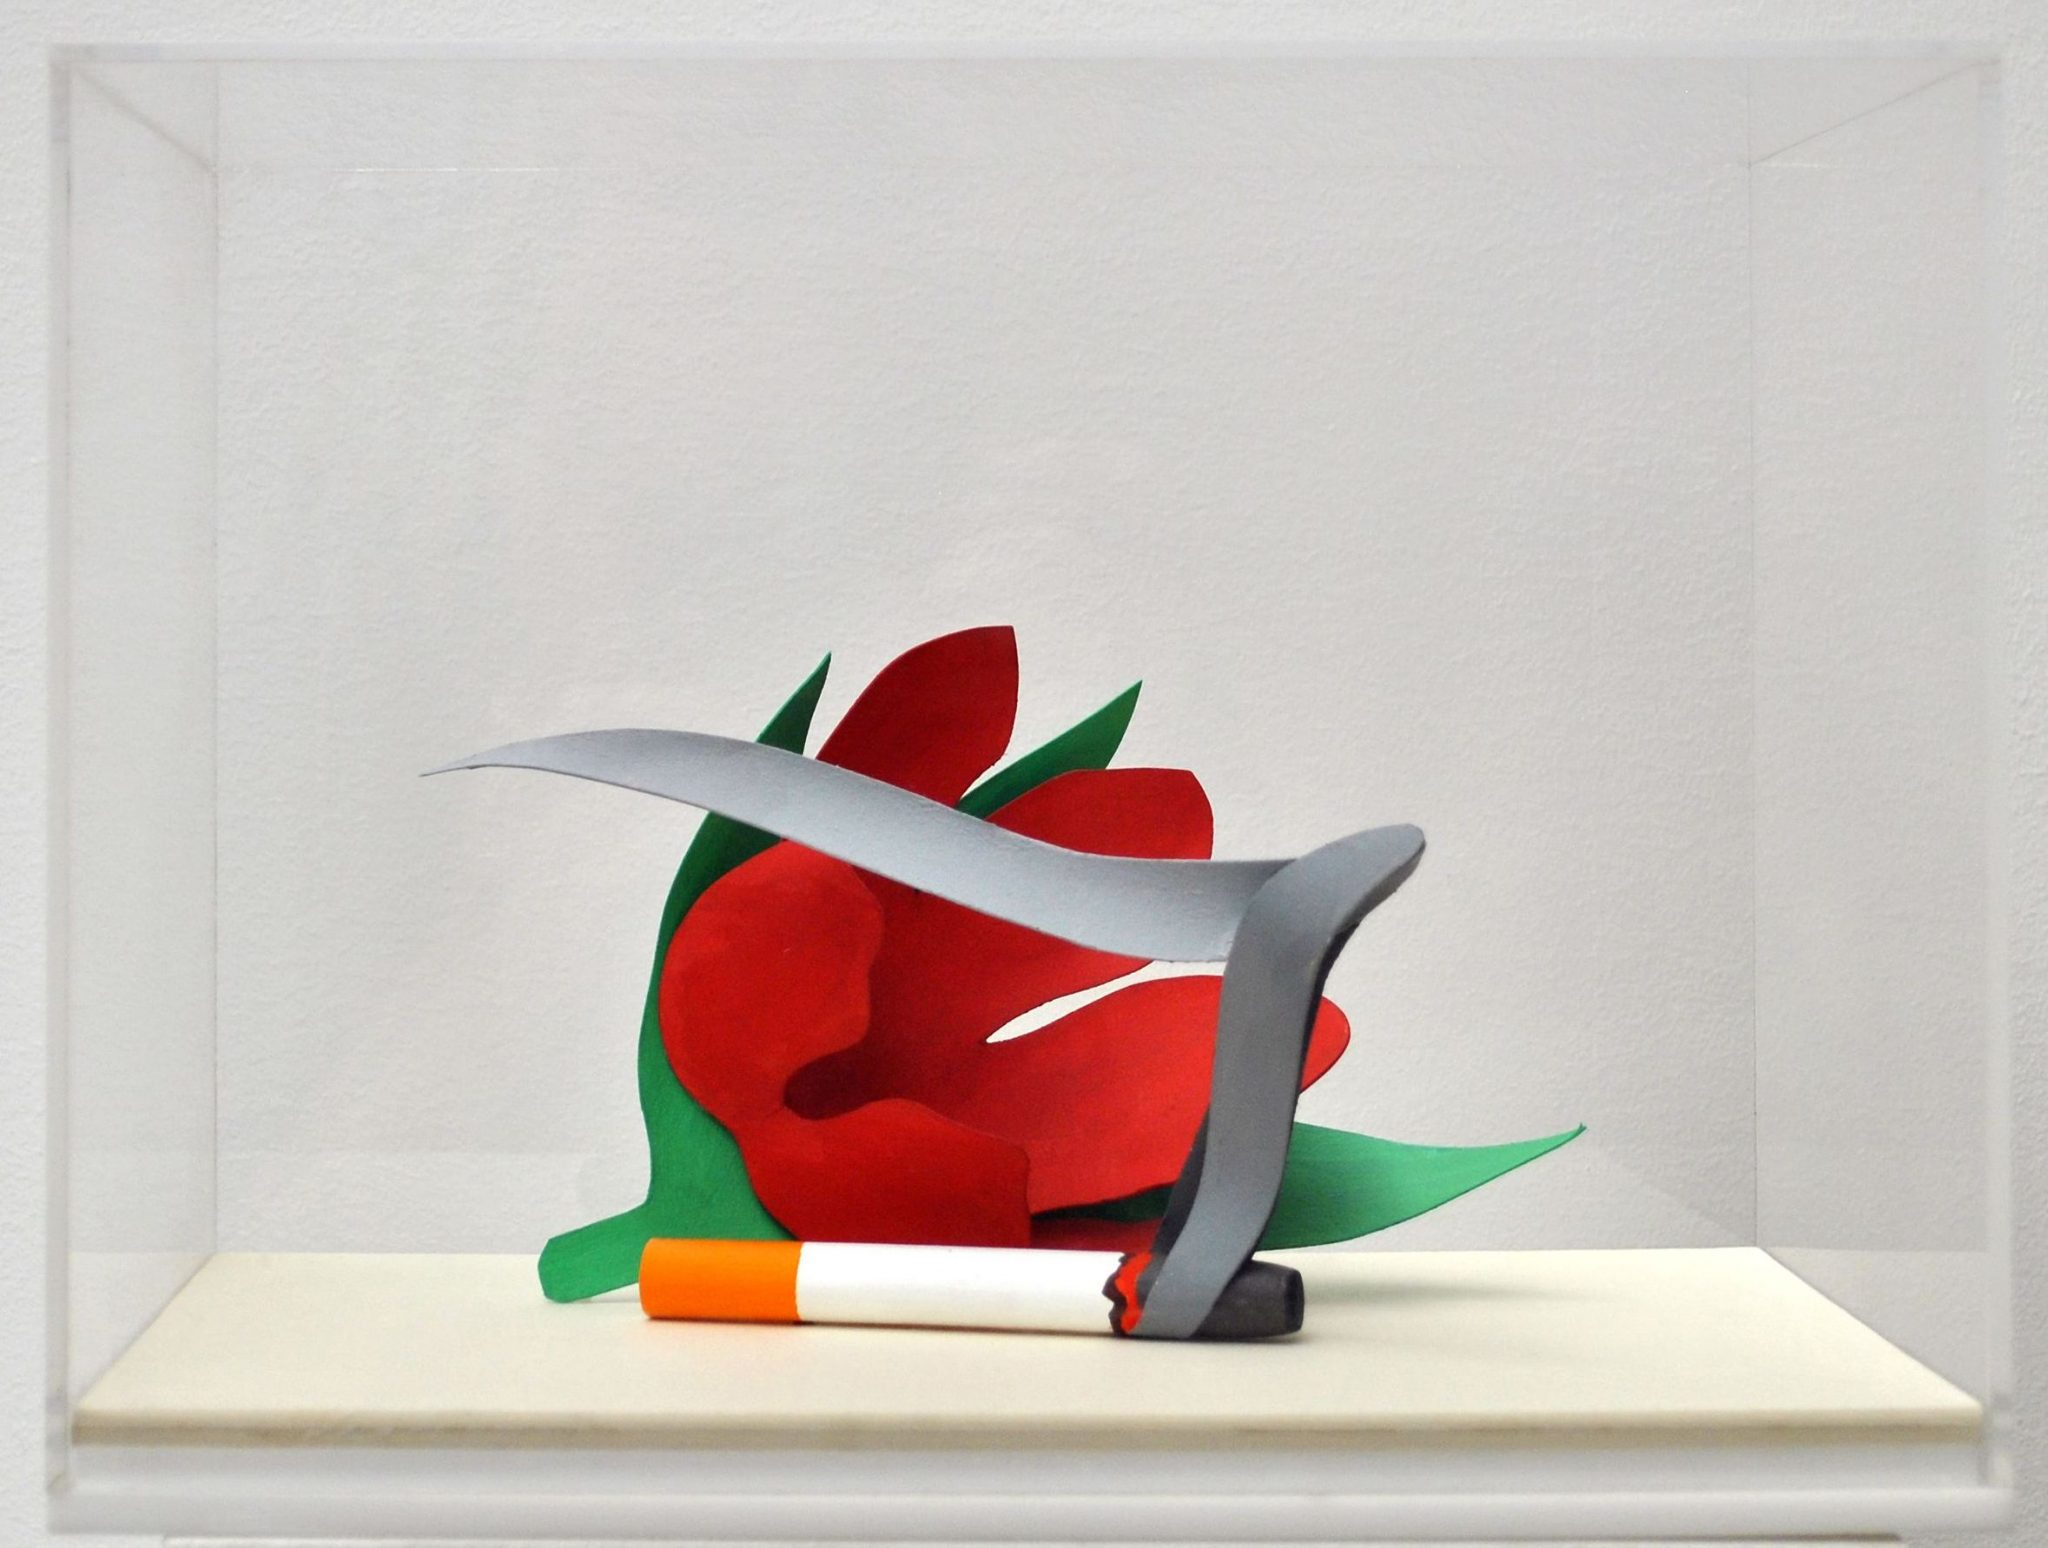 TOM WESSELMANN Maquette for Tukip and Smoking Cigarette, 1981